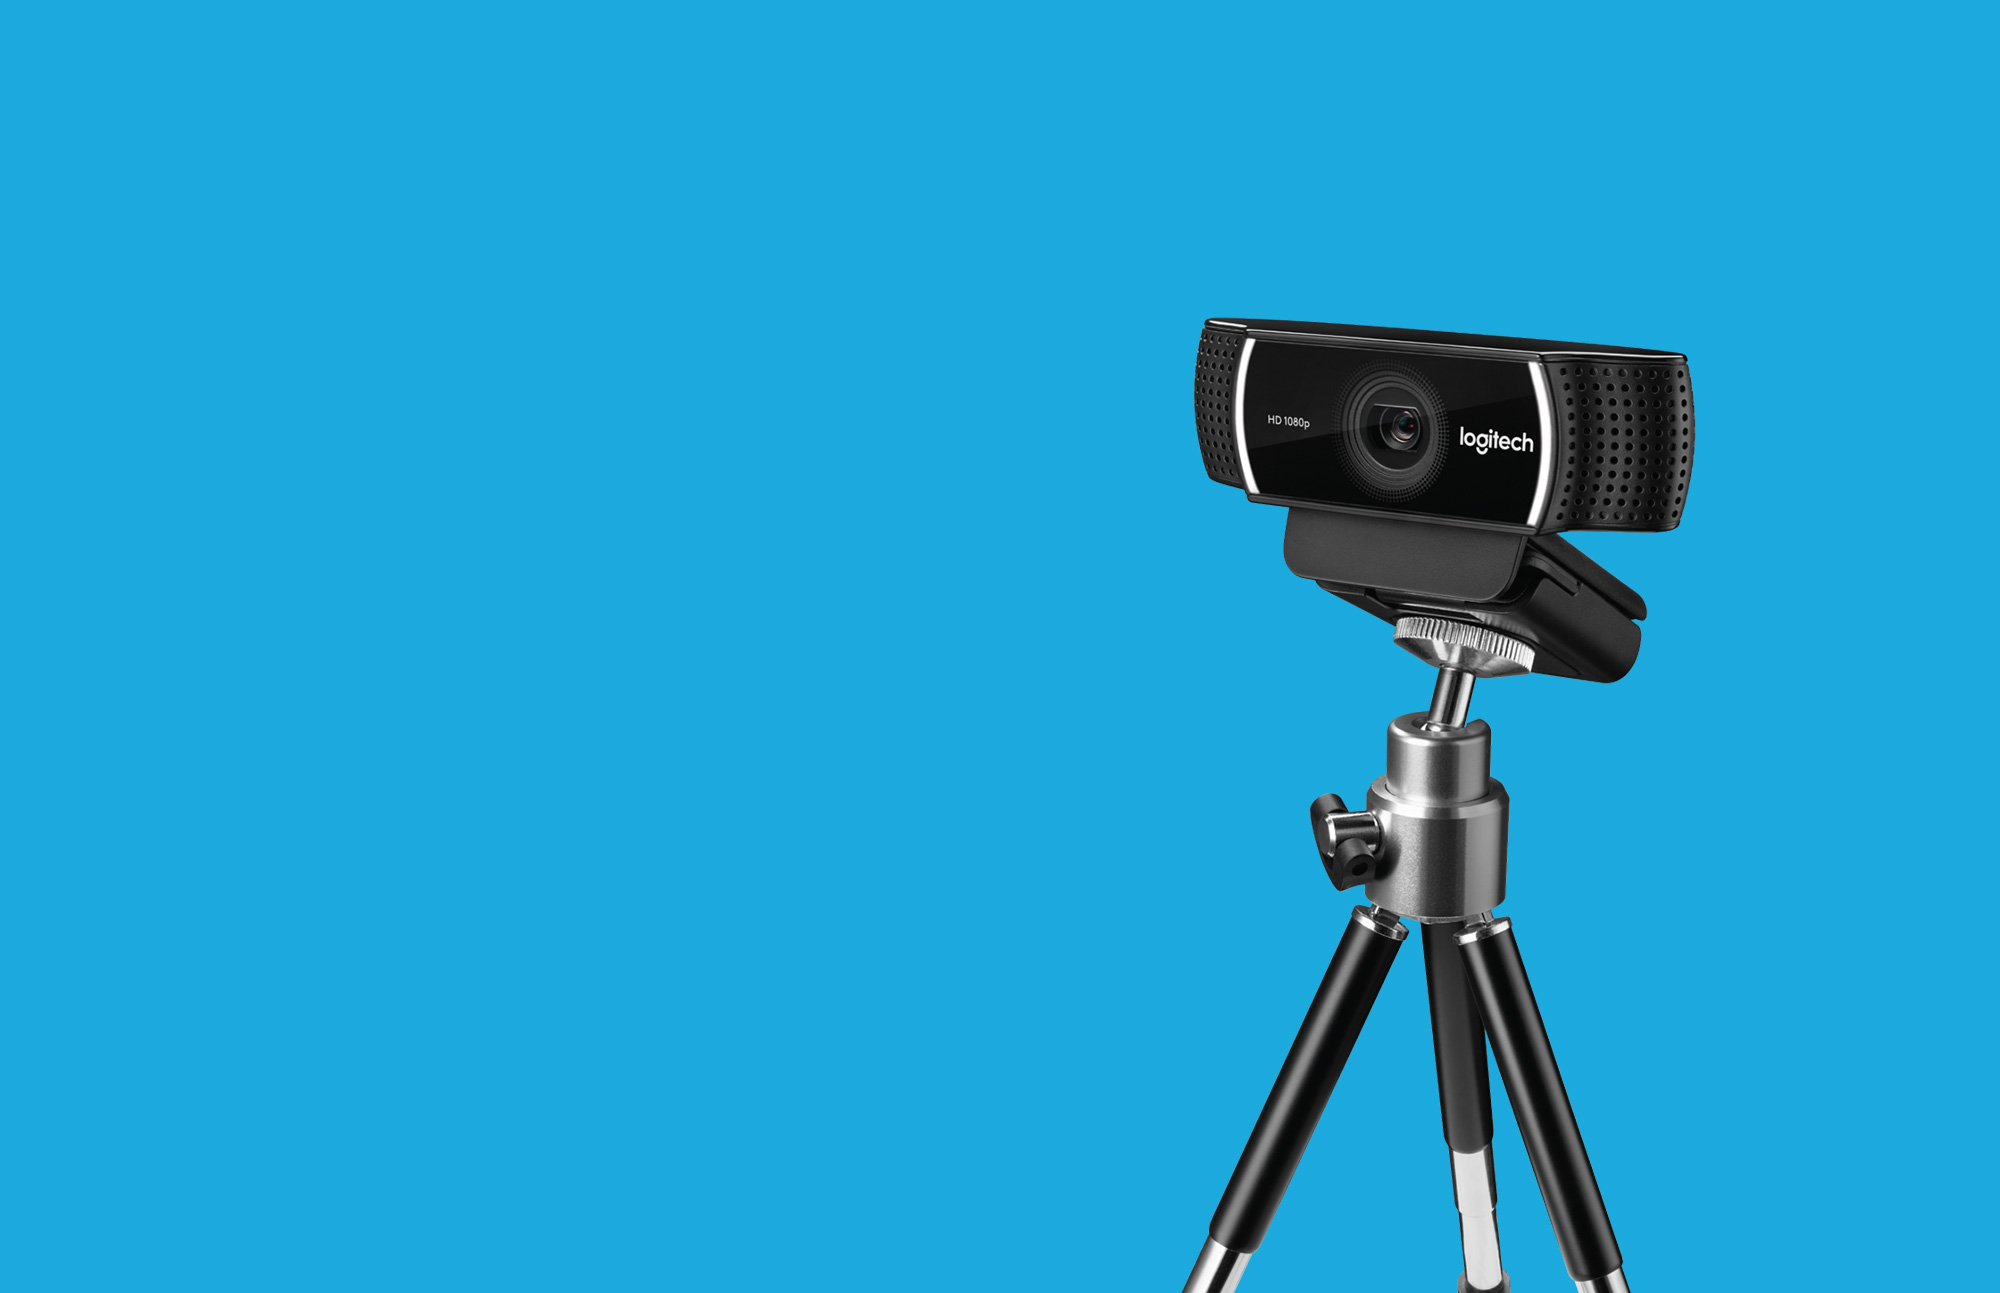 https://assets.logitech.com/assets/64731/5/c922-pro-stream-webcam.jpg